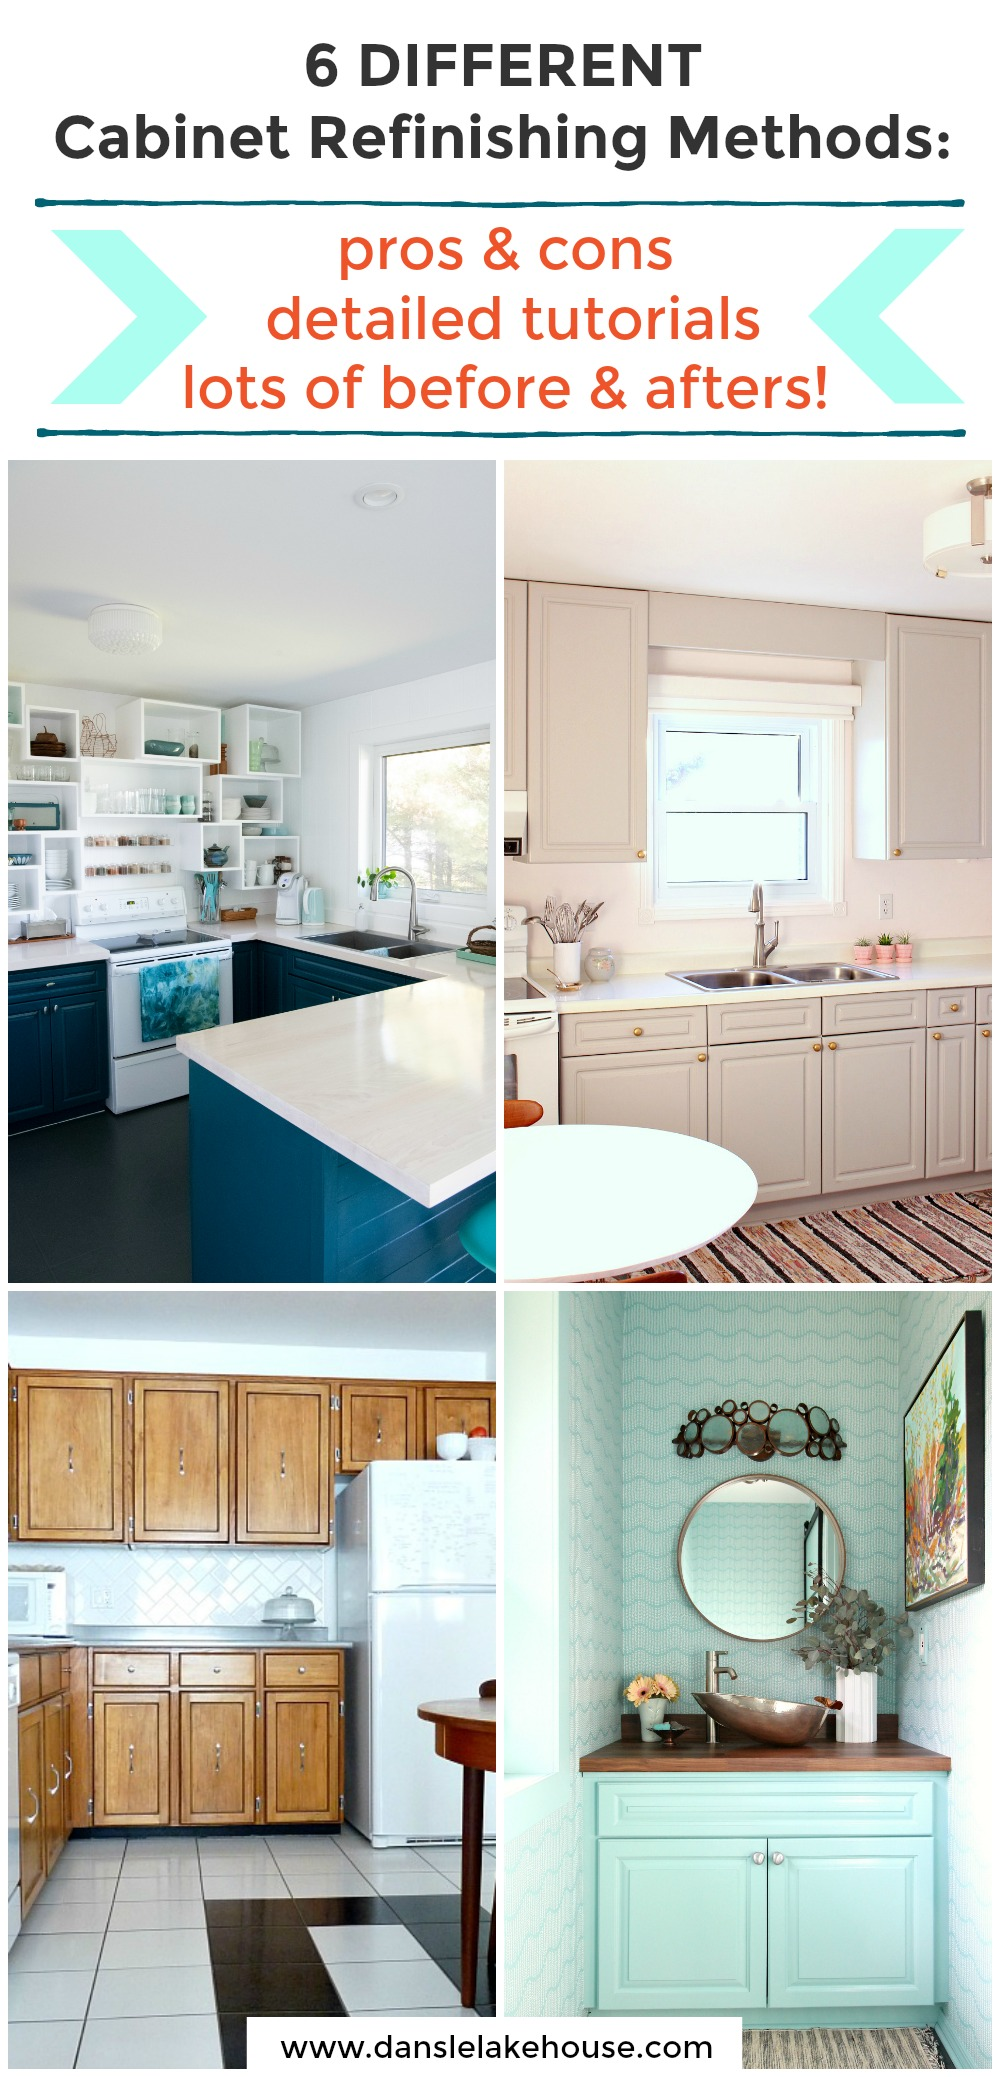 6 Different Cabinet Refinishing Methods Reviewed with Tutorials, Before/After Photos, and Tips